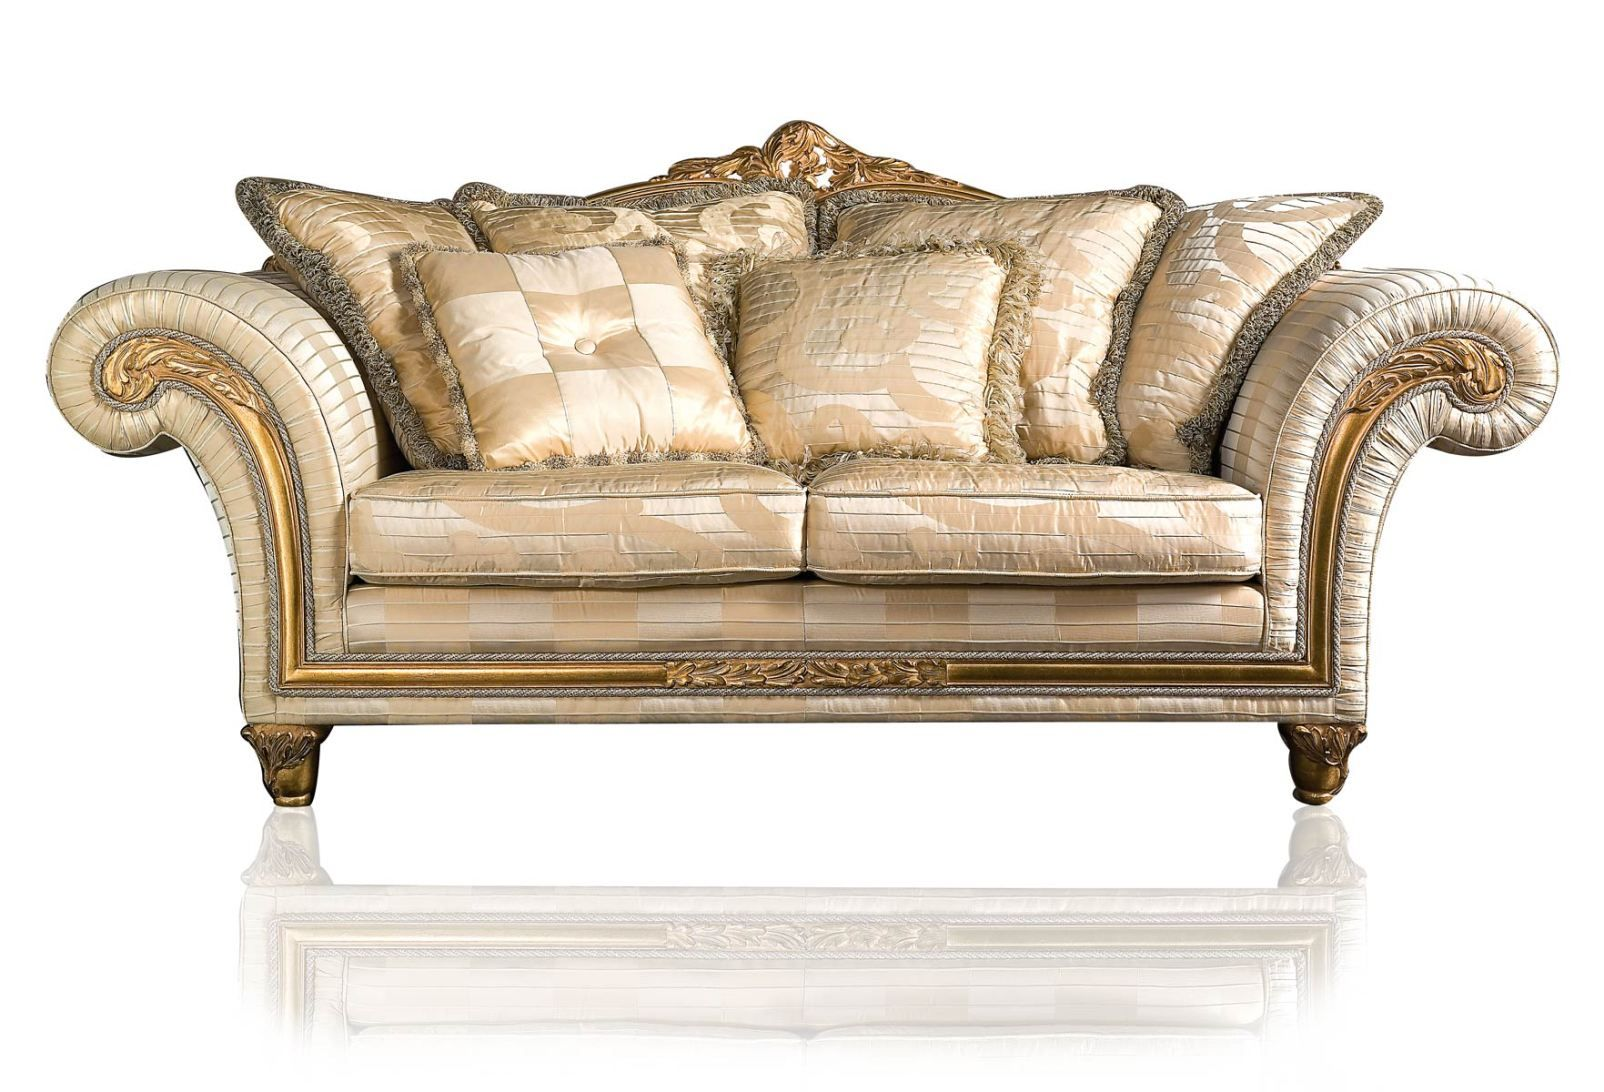 gold sofa furniture design wallpapers Places to Visit